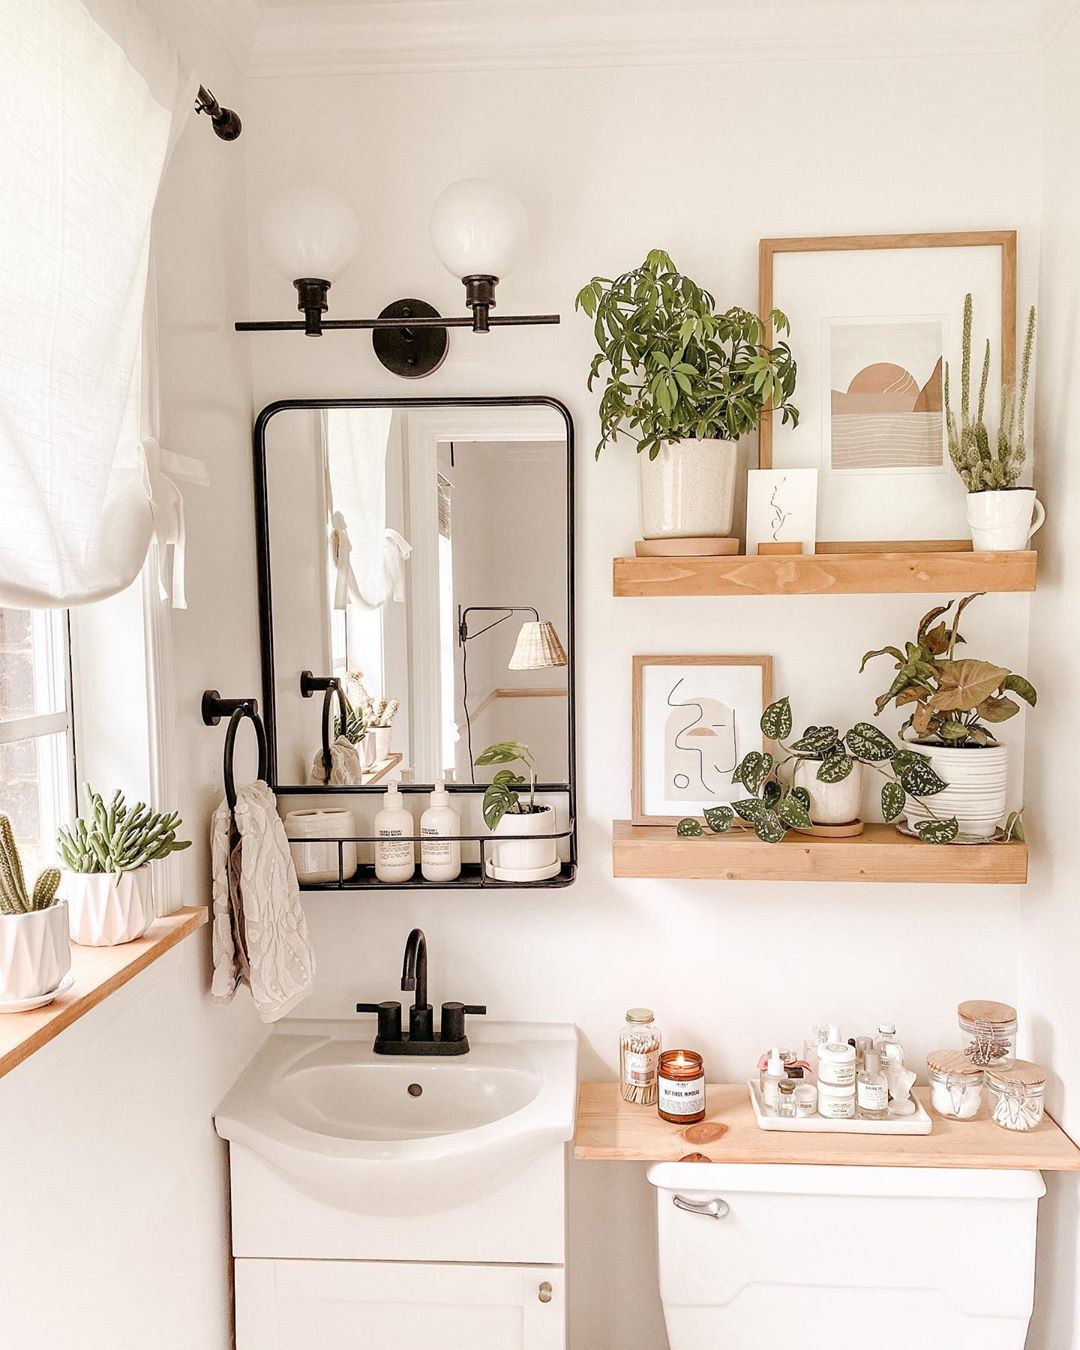 Hannah Thistle Harvest S Instagram Profile Post I Cleaned My Bathroom Ran The Dishwasher And Have Kept The In 2020 Bathroom Shelf Decor Furniture Throws Bathroom